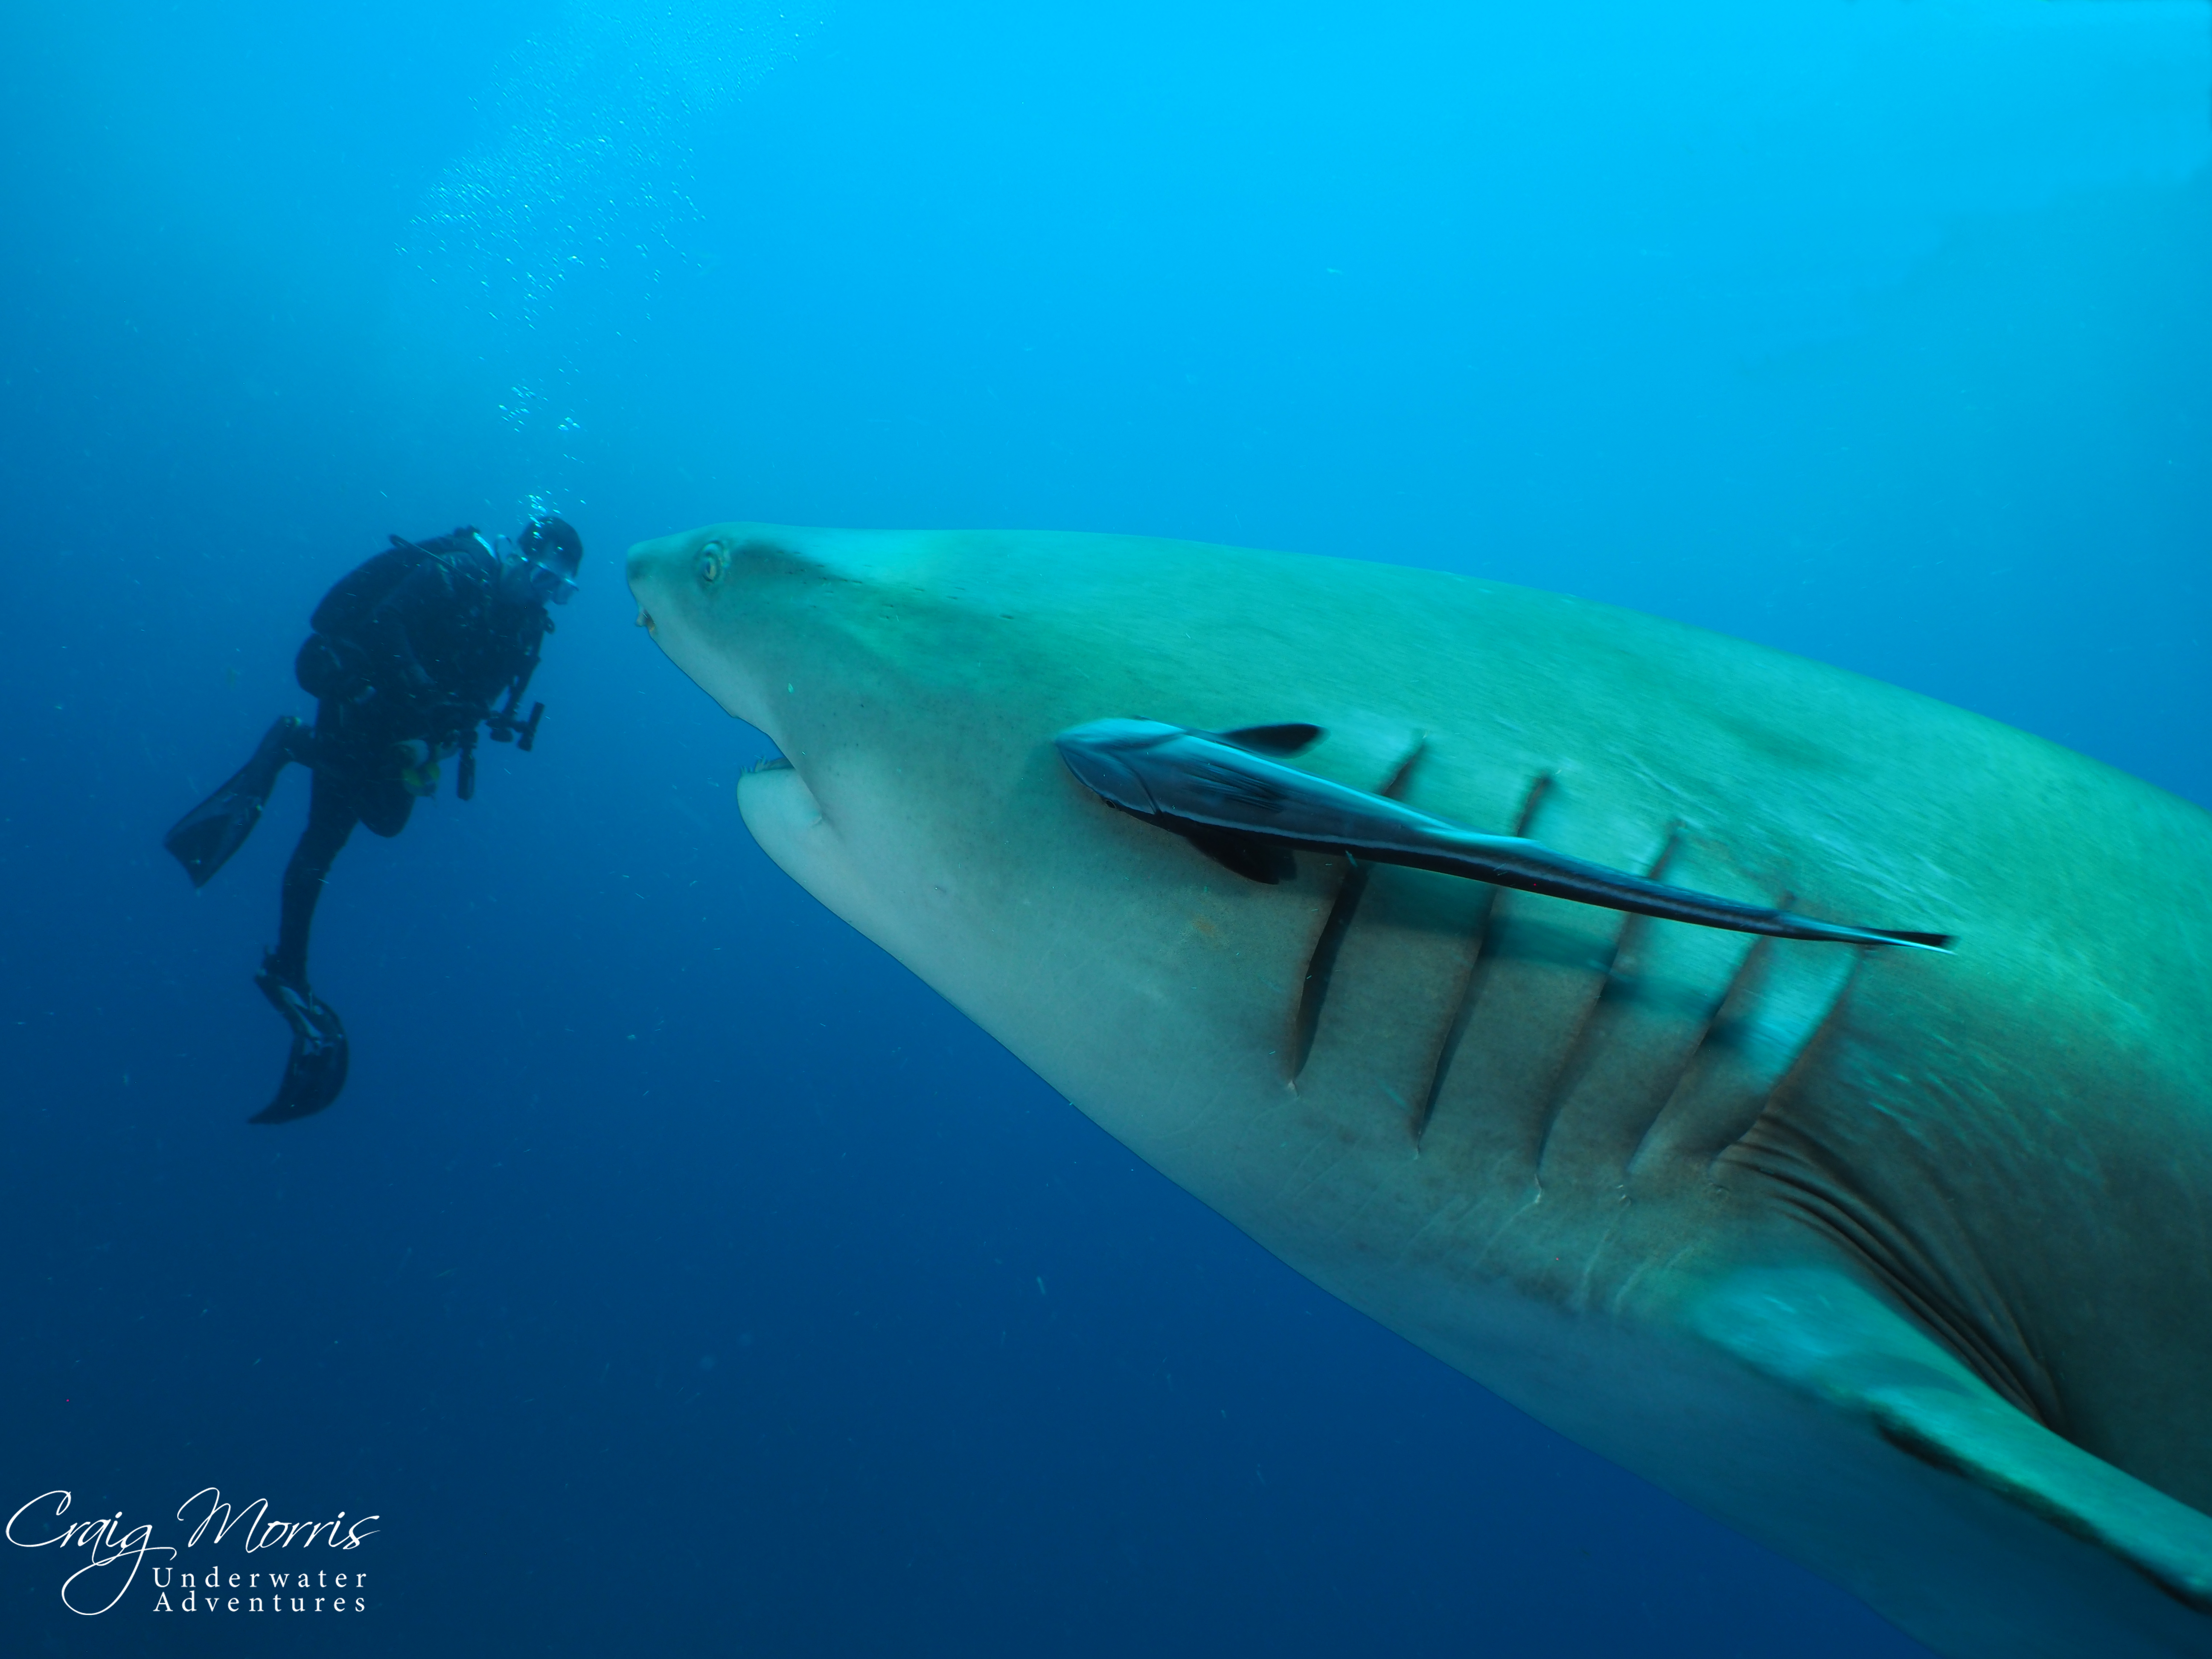 Bull Shark up close and personal